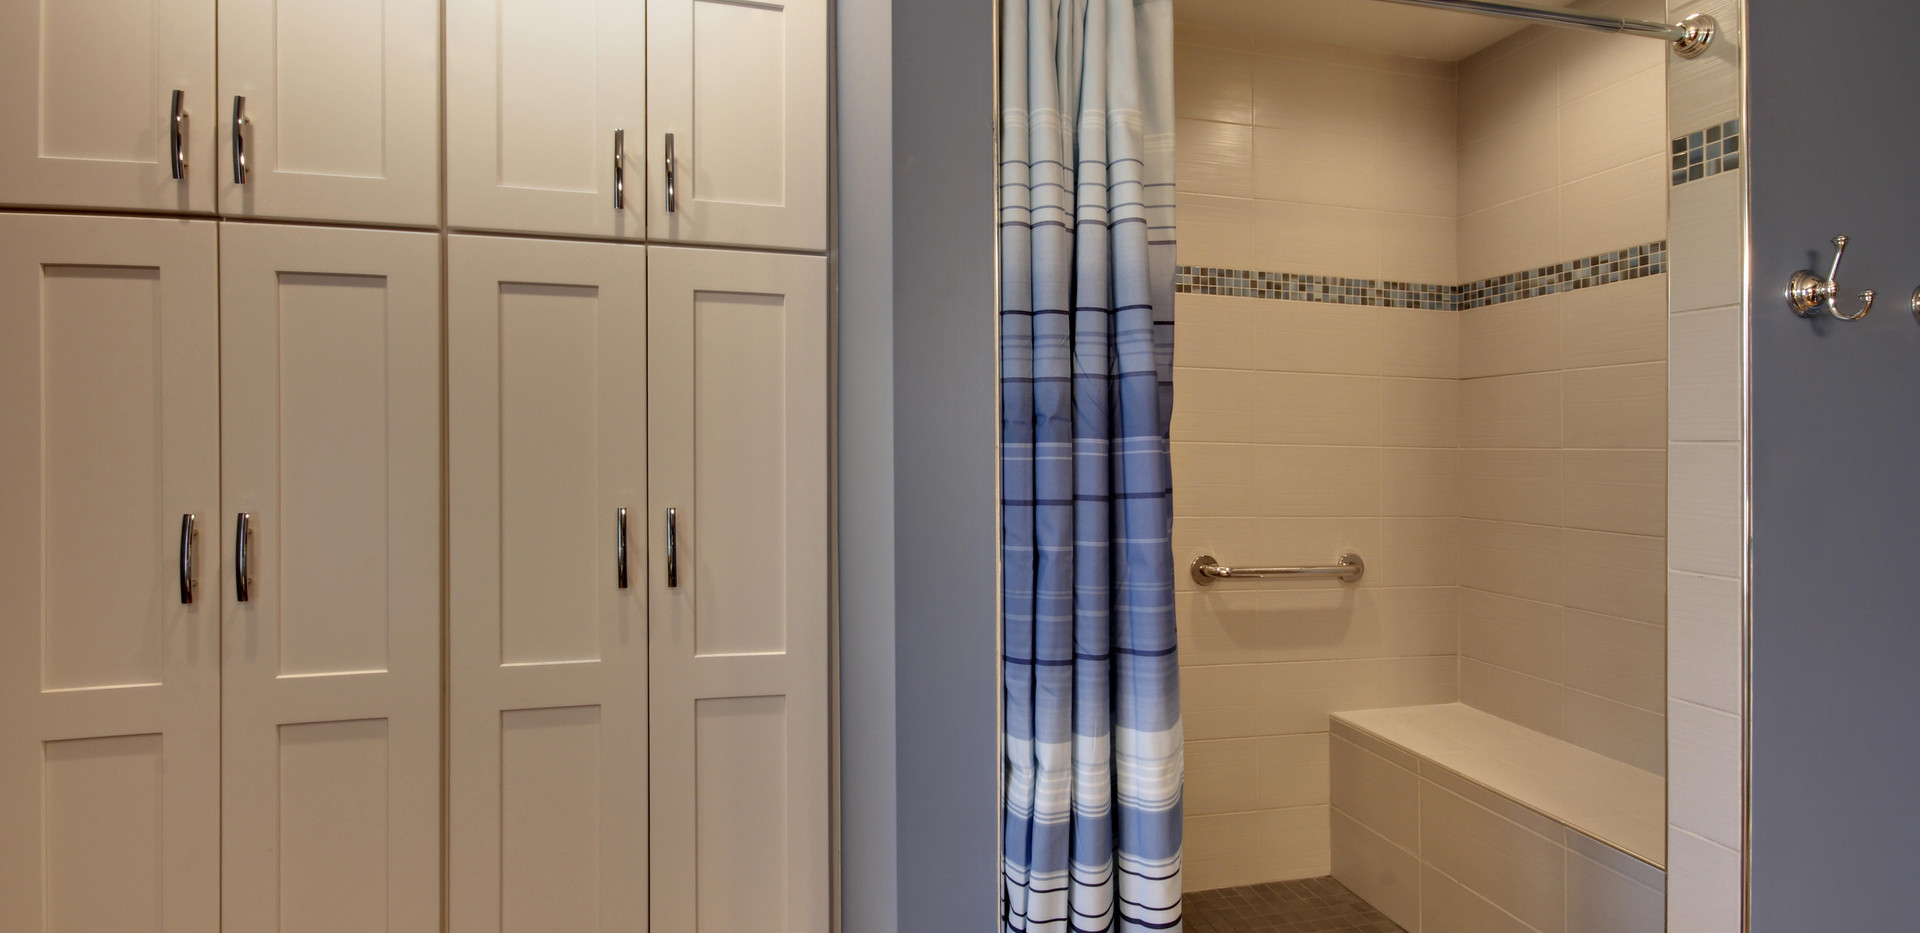 View of white cabinet space and new tile shower of Hudsonville bathroom remodel by Renew Home Improvement